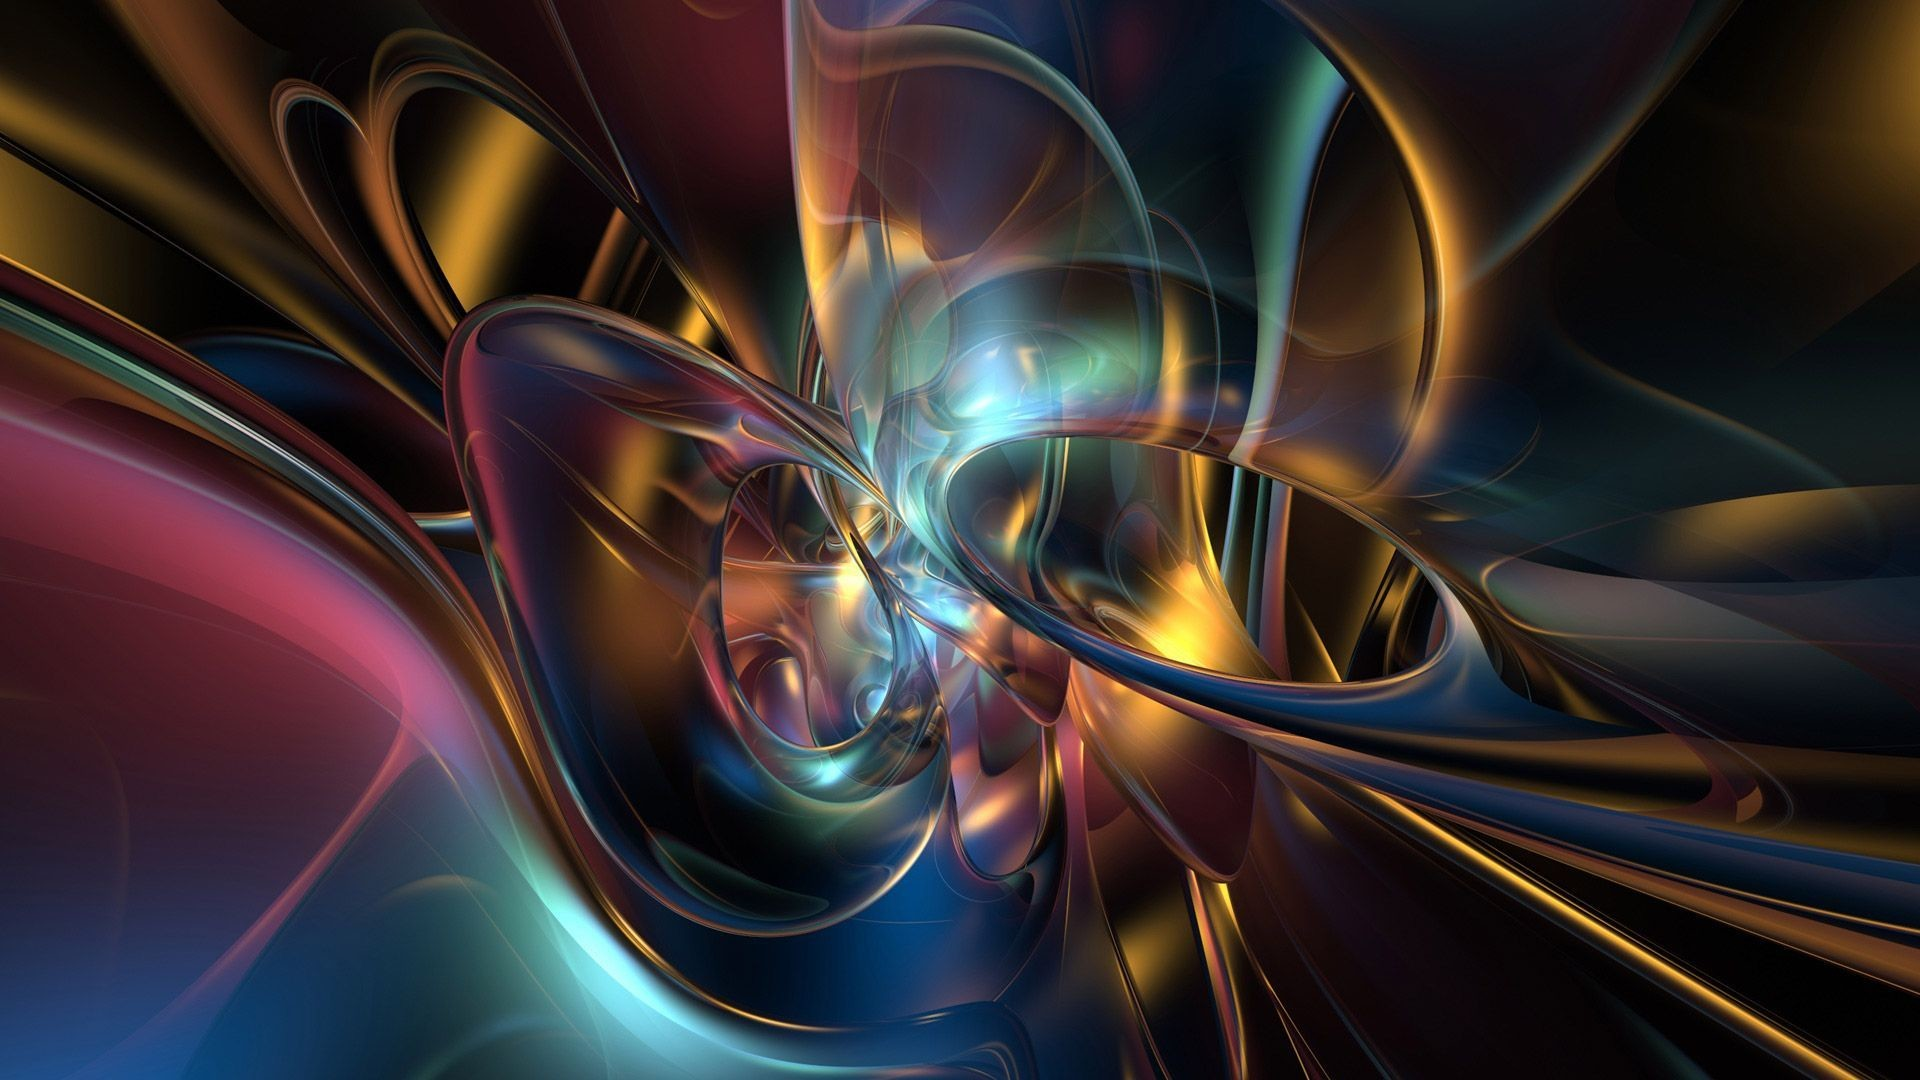 Res: 1920x1080, Abstract Design 1080p Wallpapers   HD Wallpapers